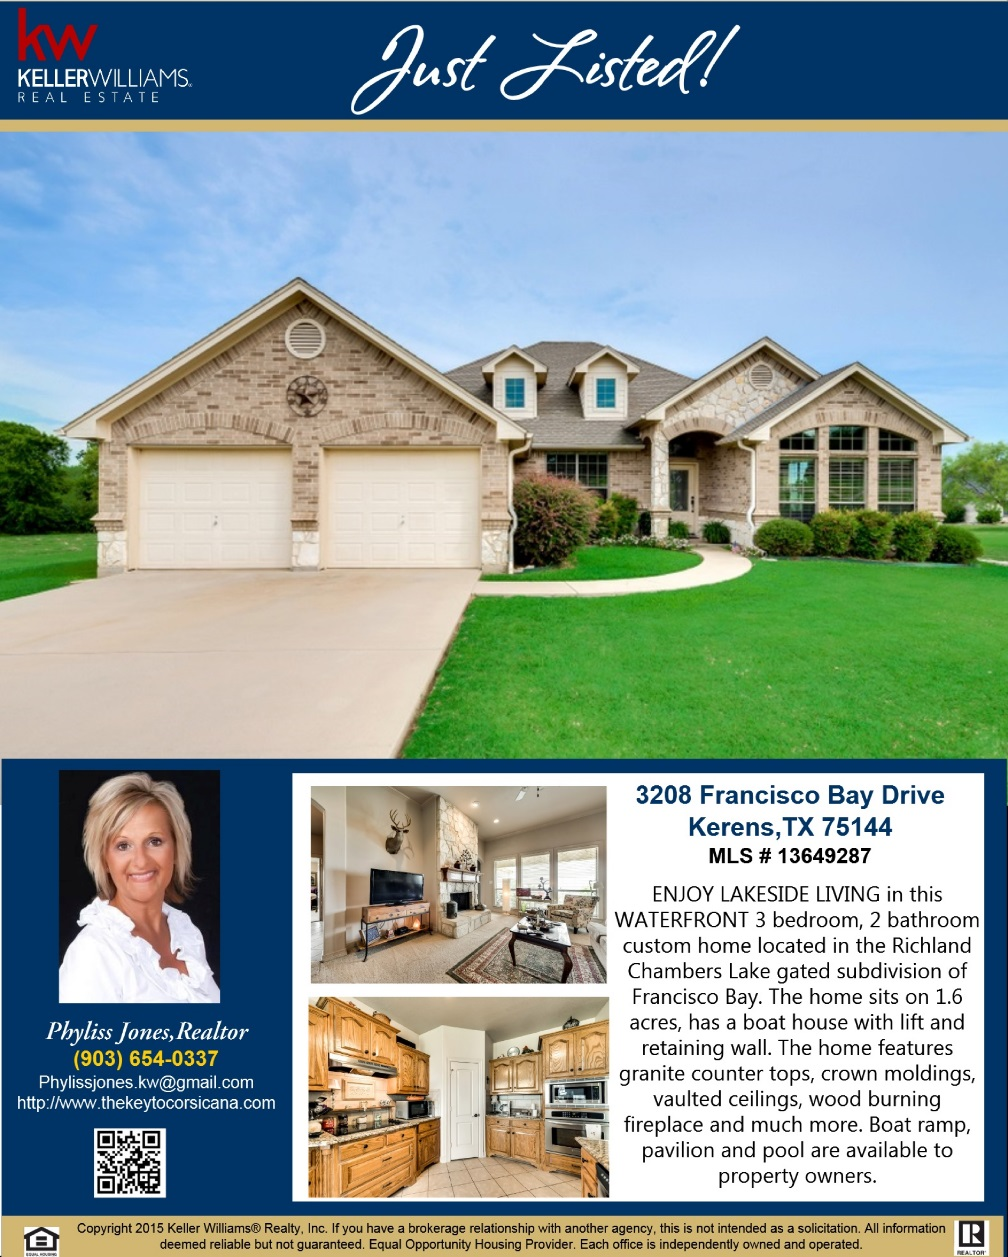 BEAUTIFUL WATERFRONT 3 bedroom, 2 bathroom custom home located in the Richland Chambers Lake gated subdivision of Francisco Bay. :) Please call me for more details Phyliss Jones, Realtor (903) 654-0337.